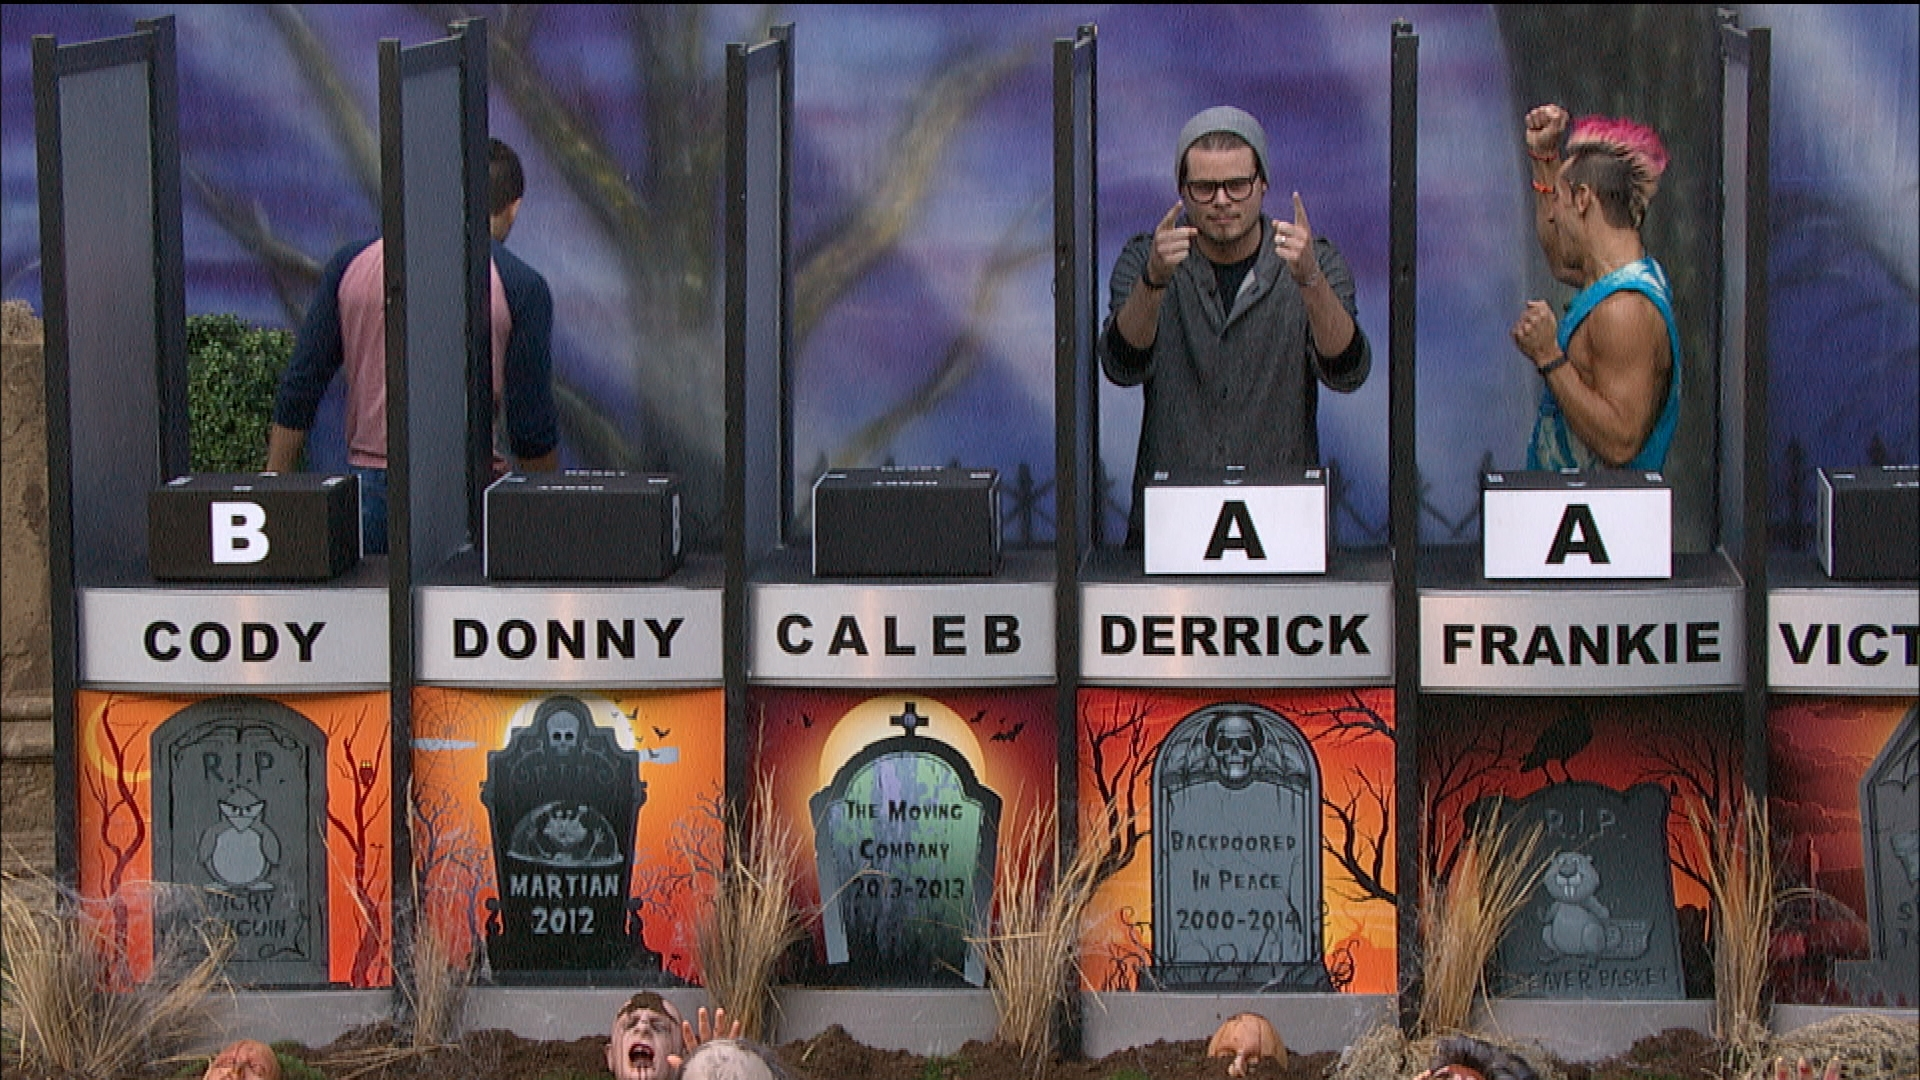 Derrick and Frankie win